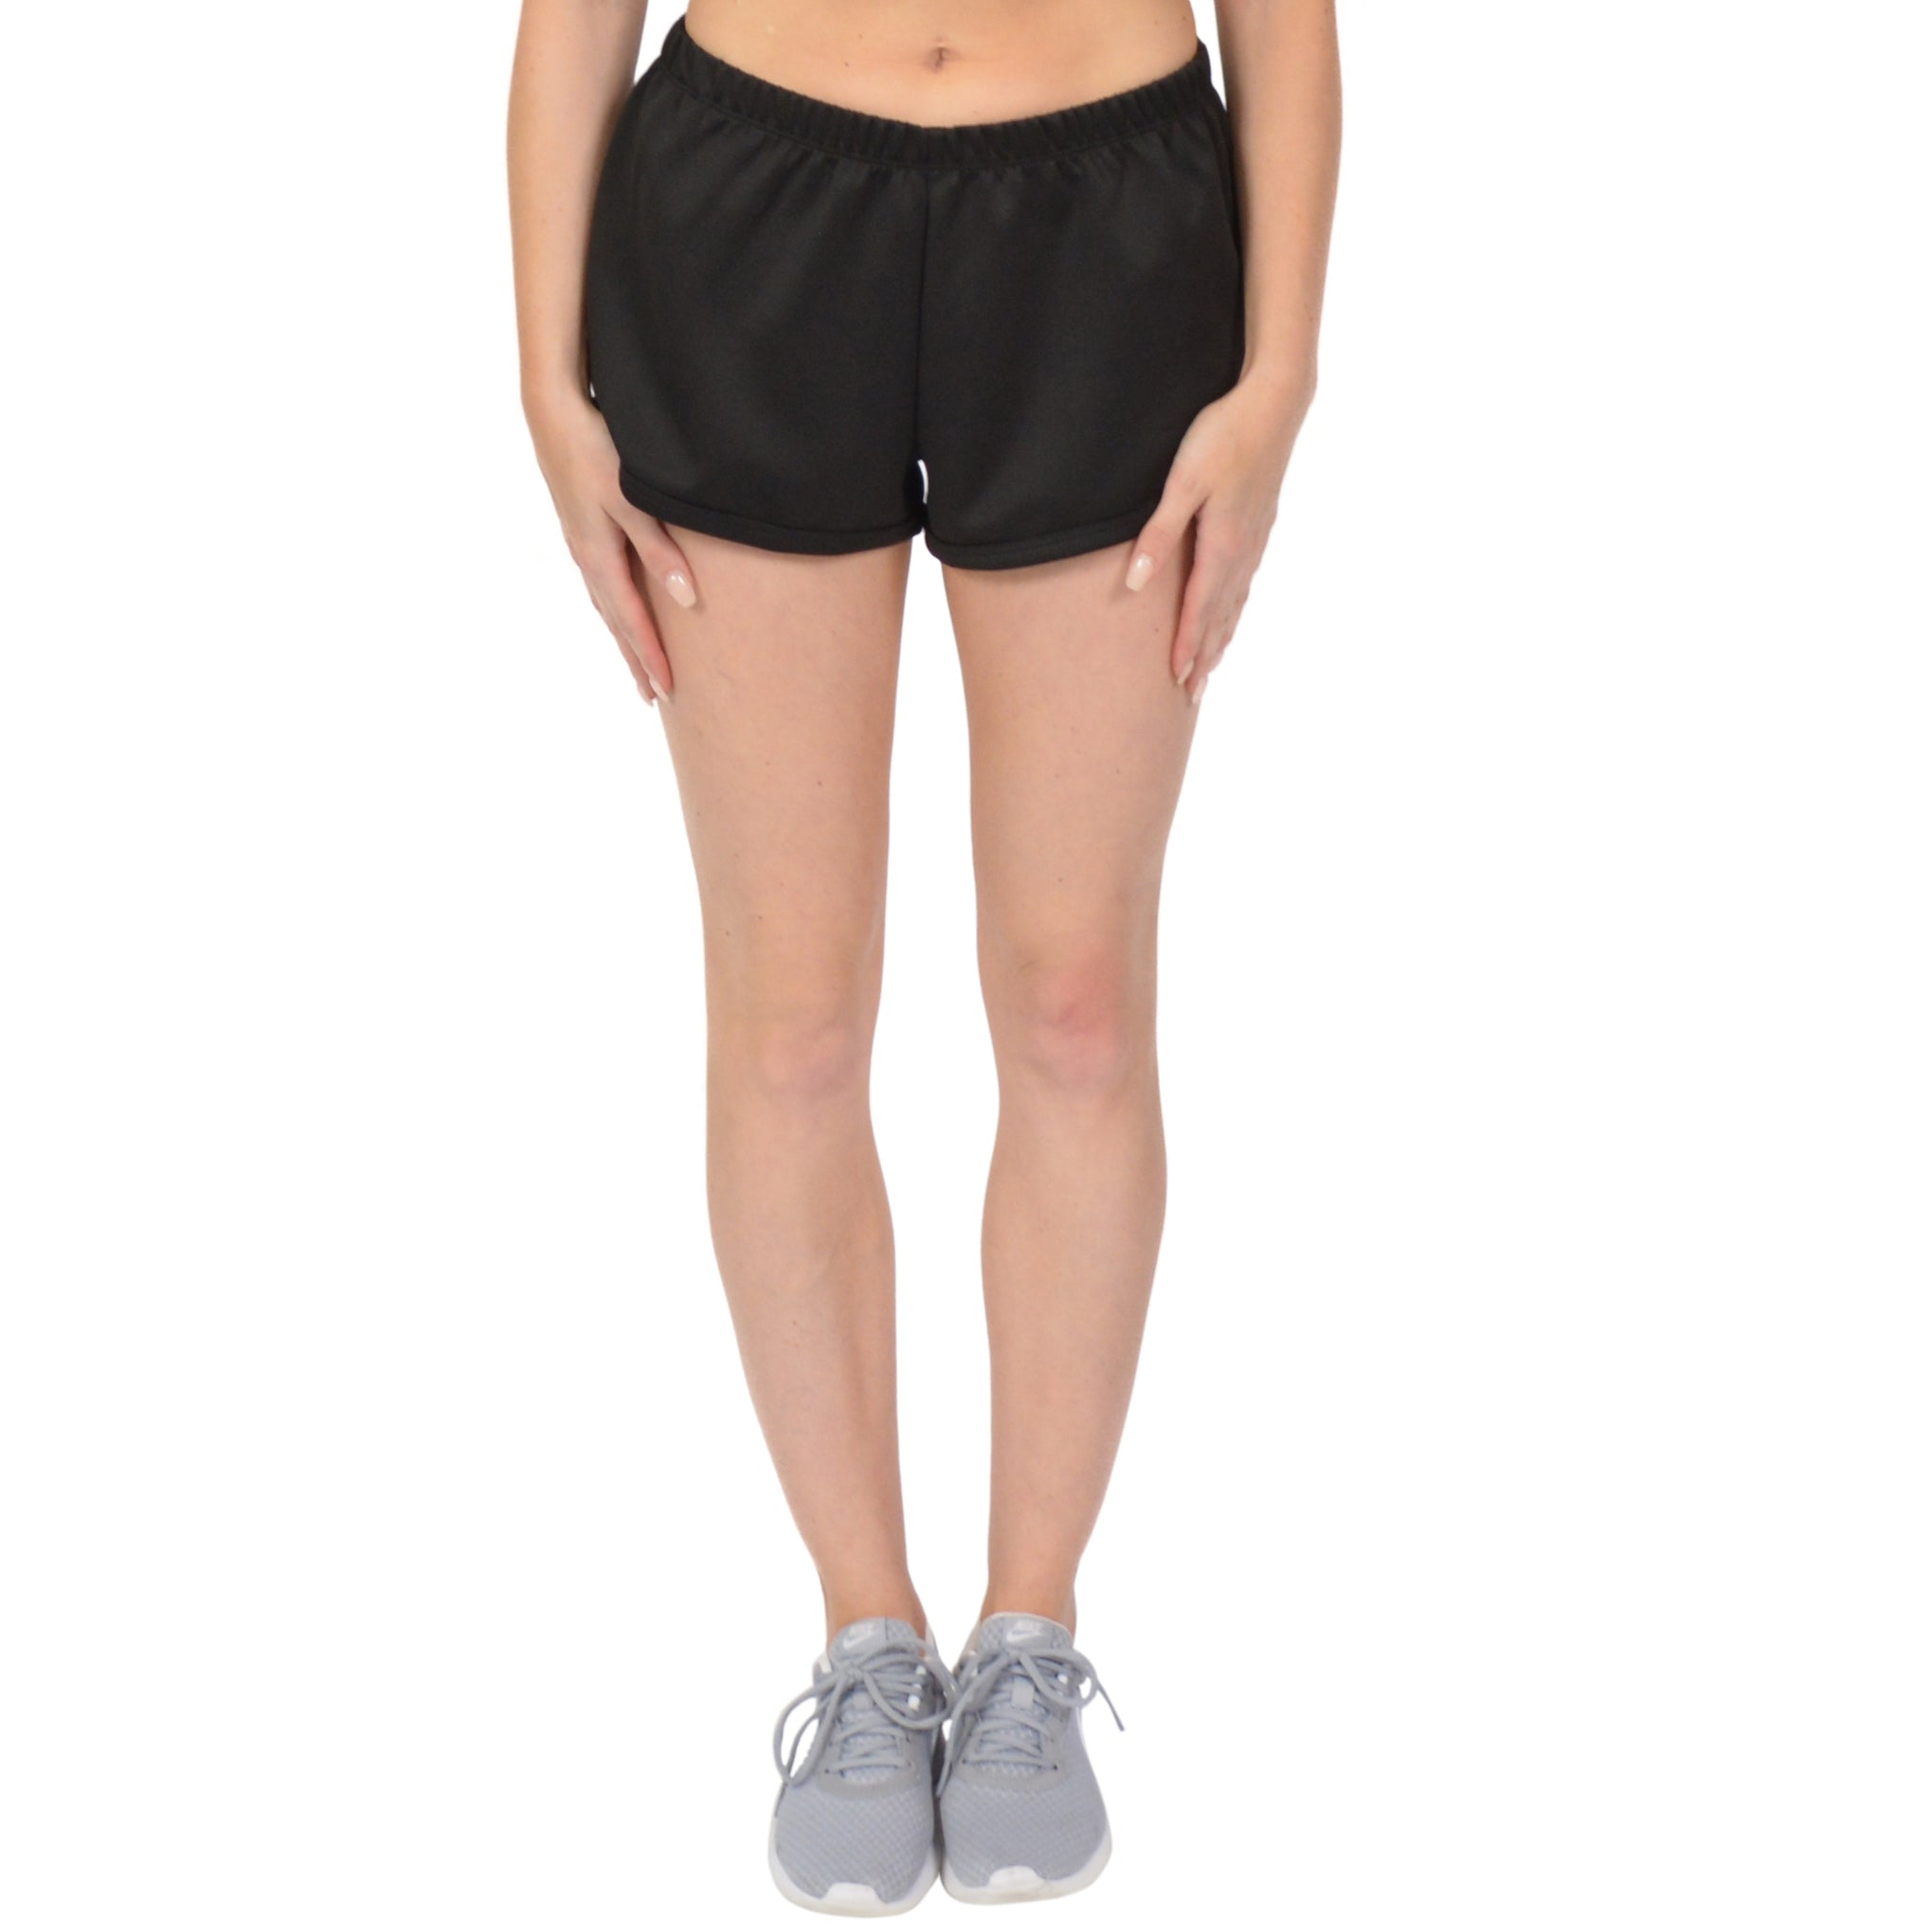 Women's Running Workout Fitness Shorts